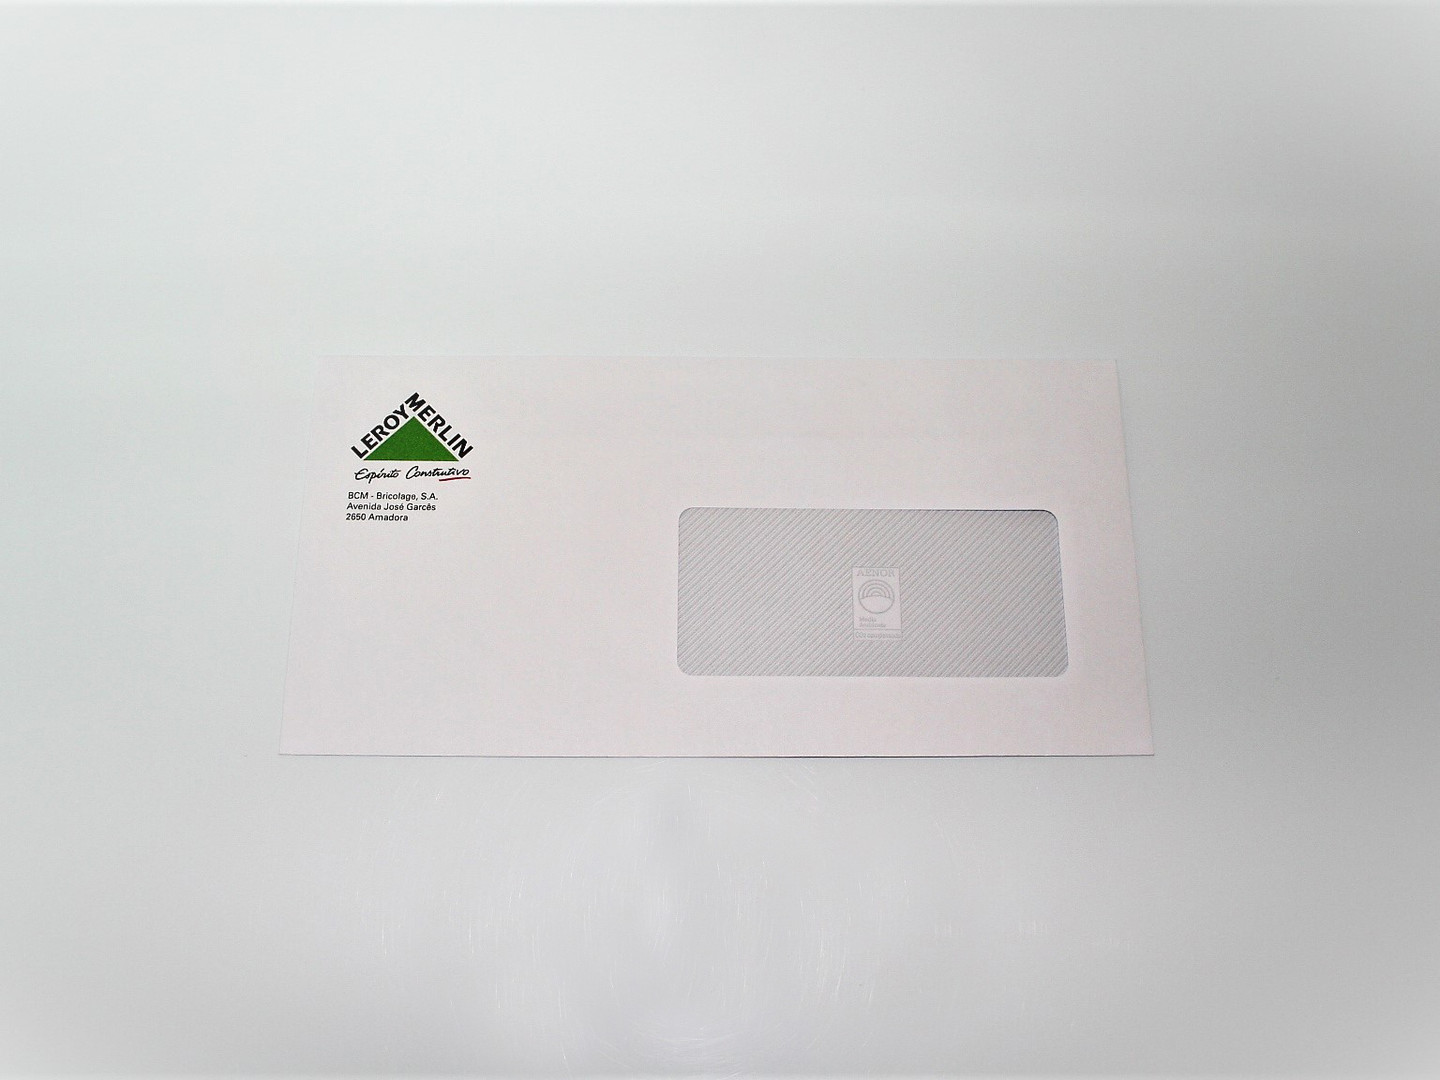 Envelope LEROY MERLIN.JPG